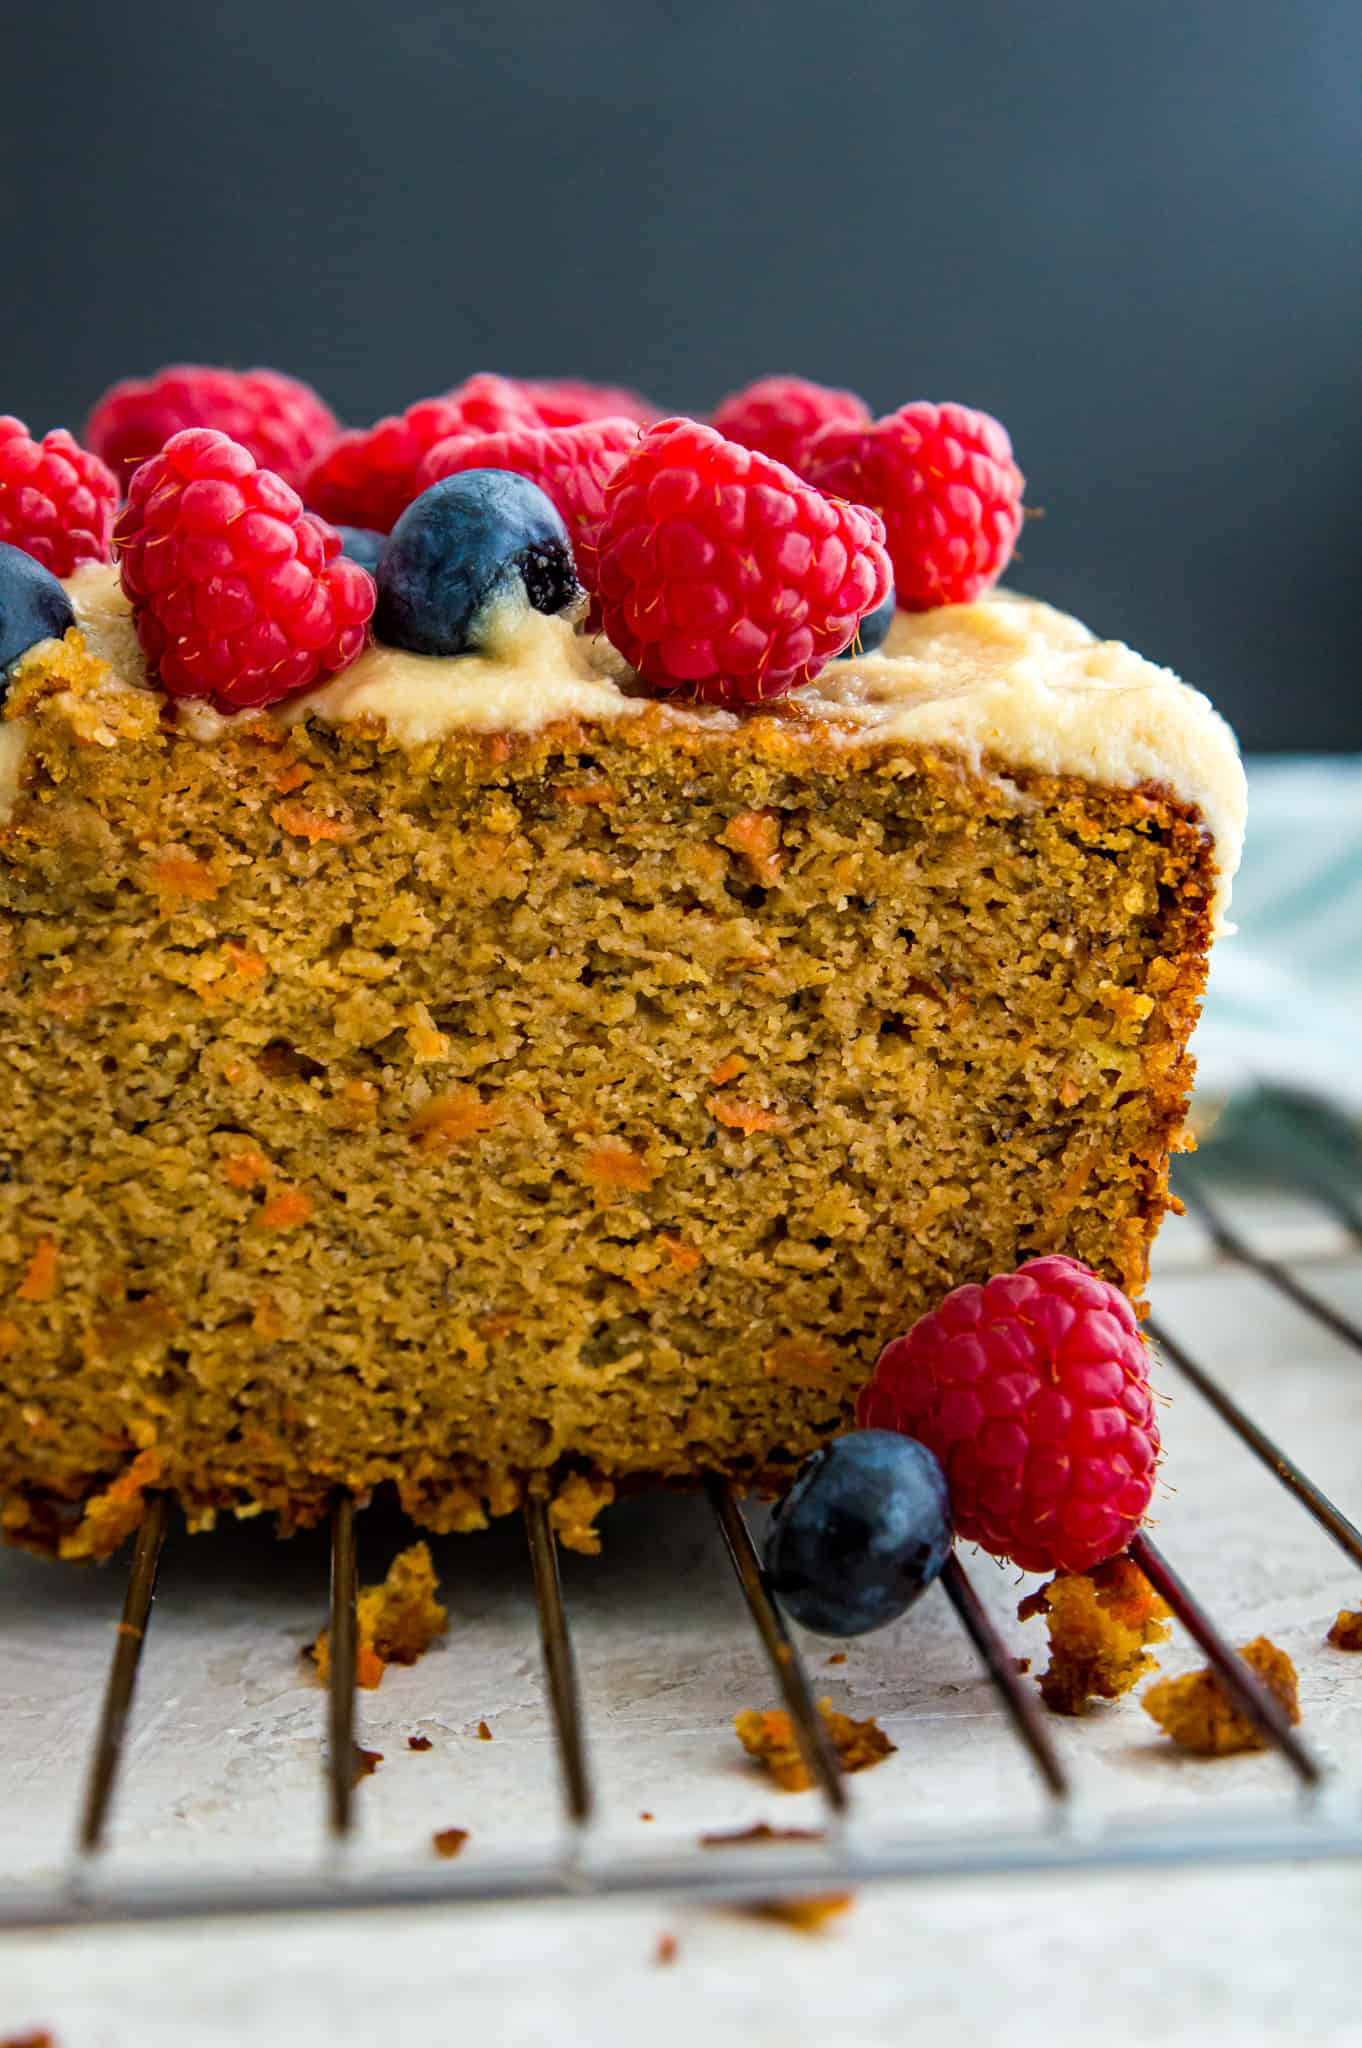 A loaf of paleo carrot cake banana bread topped with fresh blueberries and raspberries